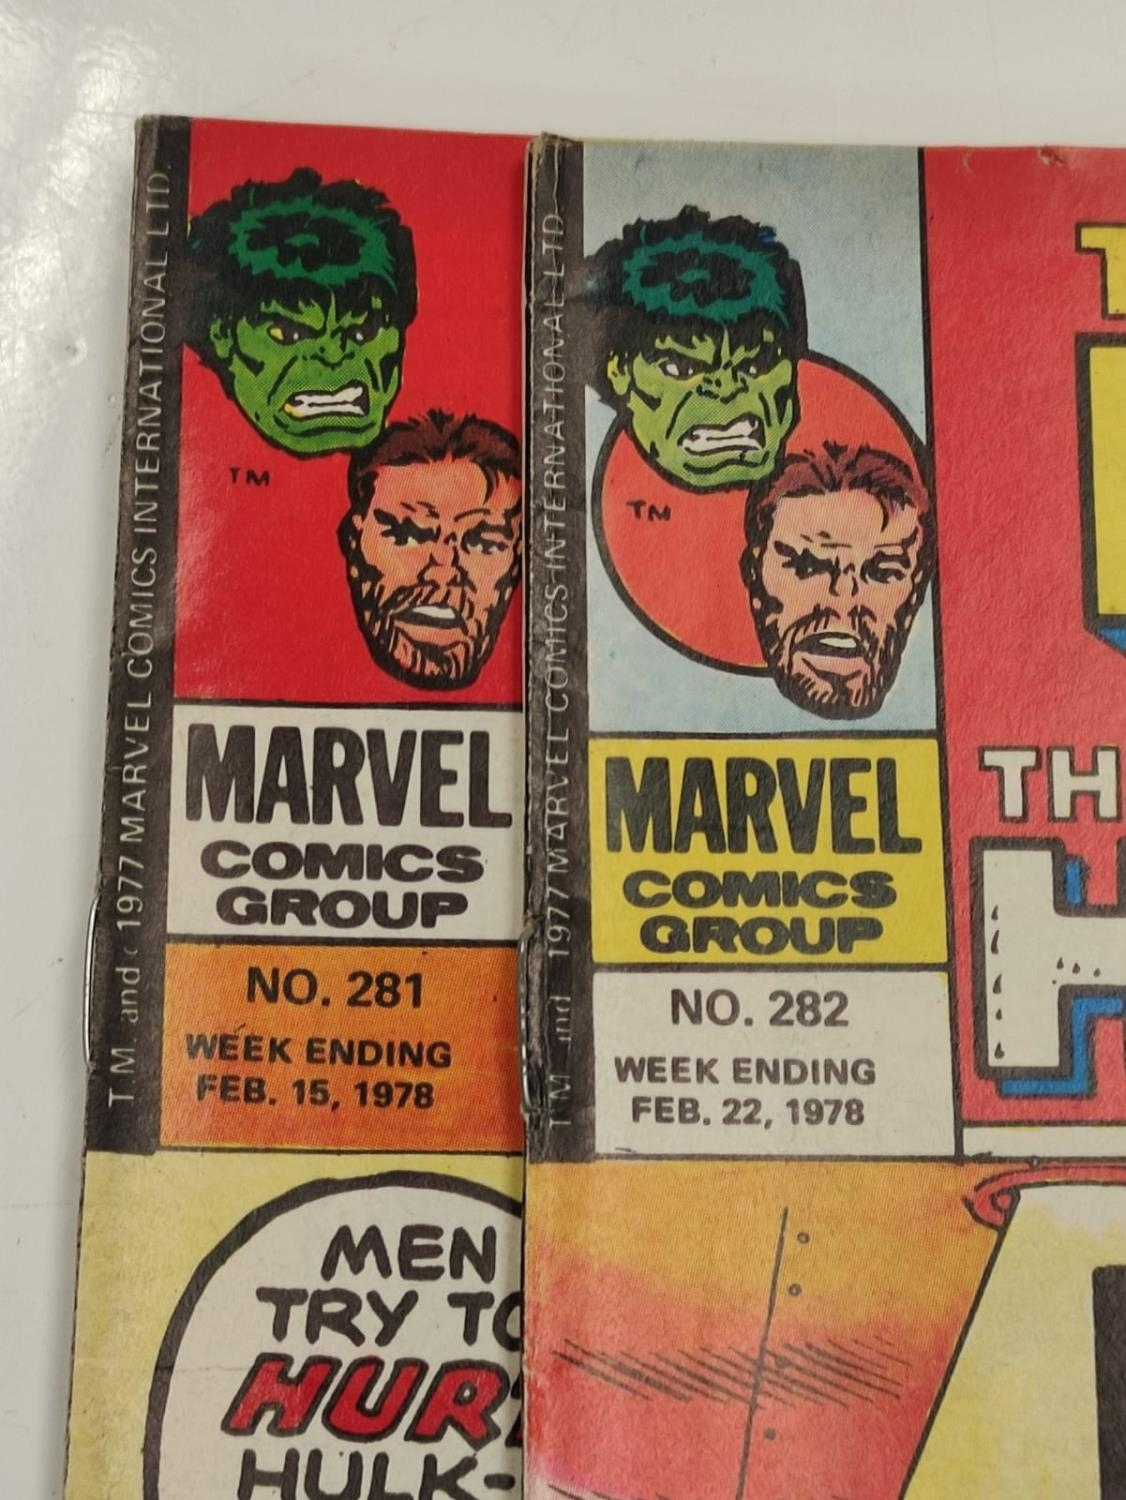 5 editions of Special Vintage Marvel Comics including 'The Tomb of Dracula'. - Image 11 of 15